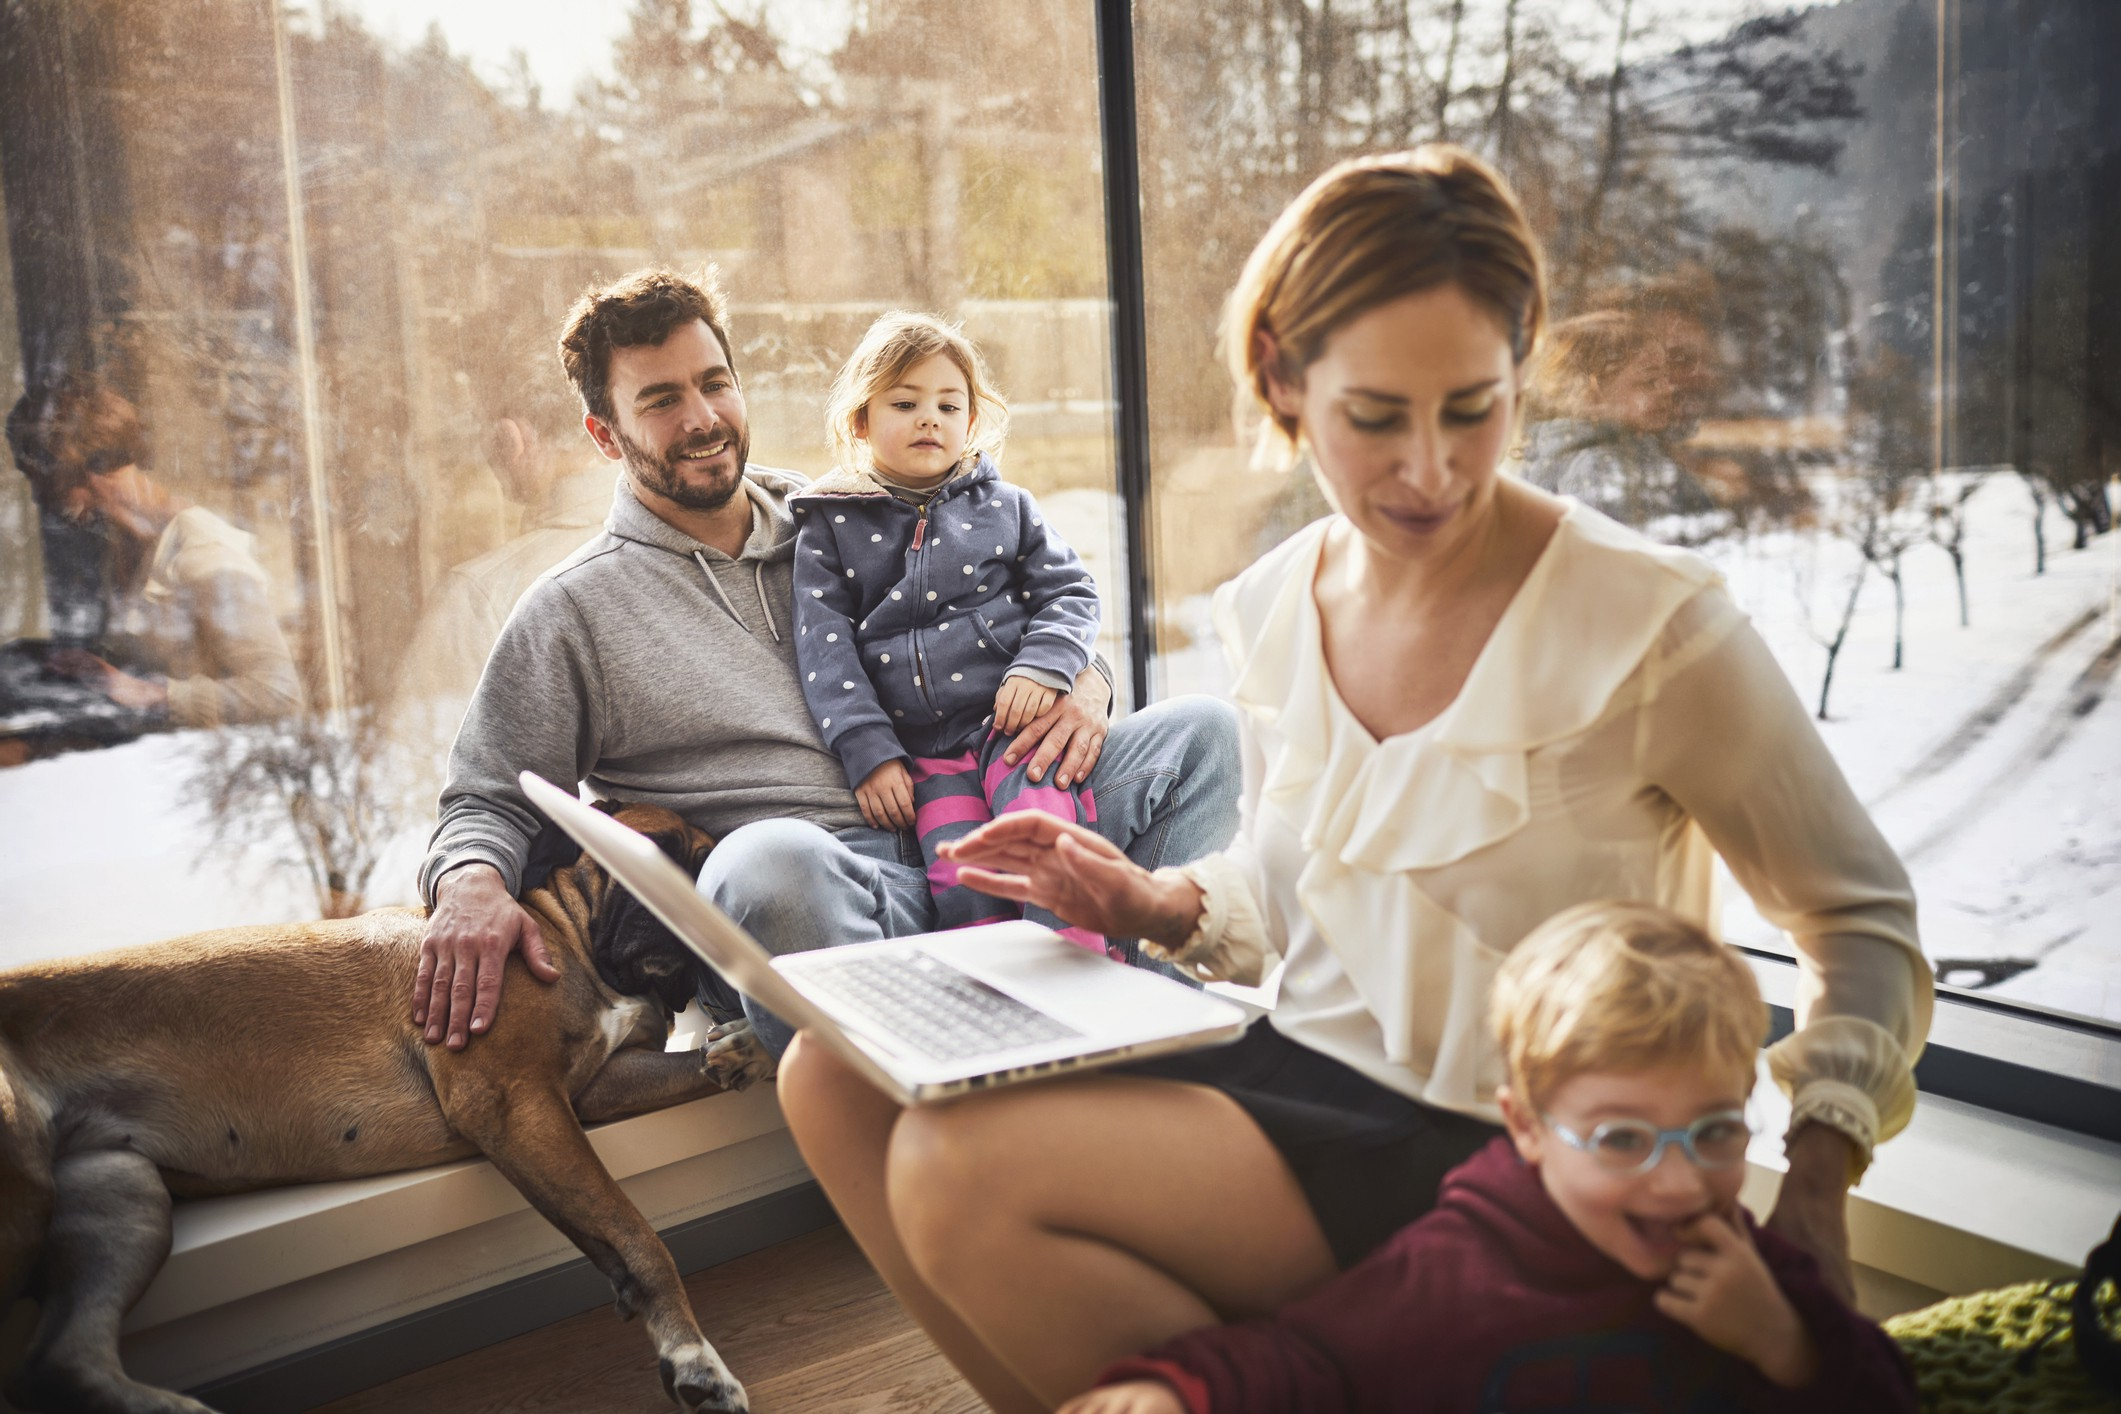 A photo of a family of four (mom, dad, two kids) sitting at home. Mom is on her computer and attending to a child.